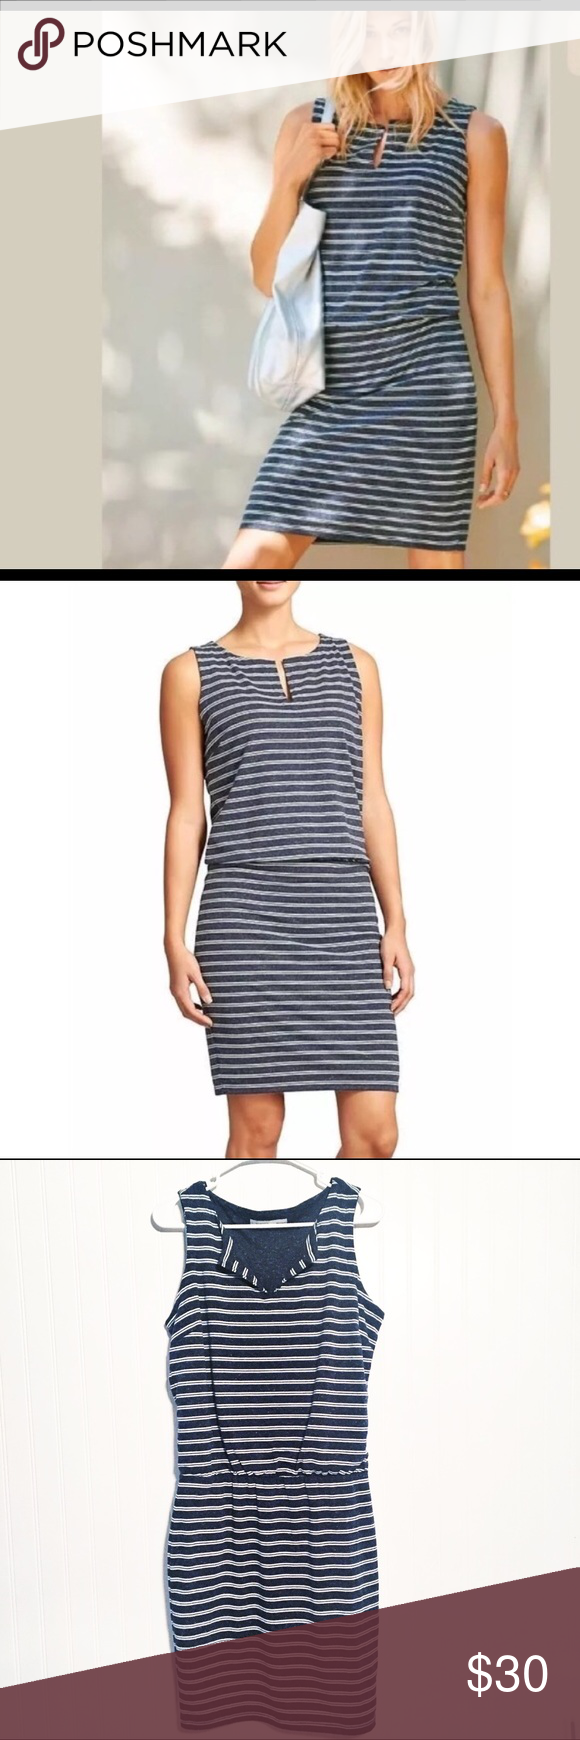 Athleta Women/'s Striped Vida Dress Size M